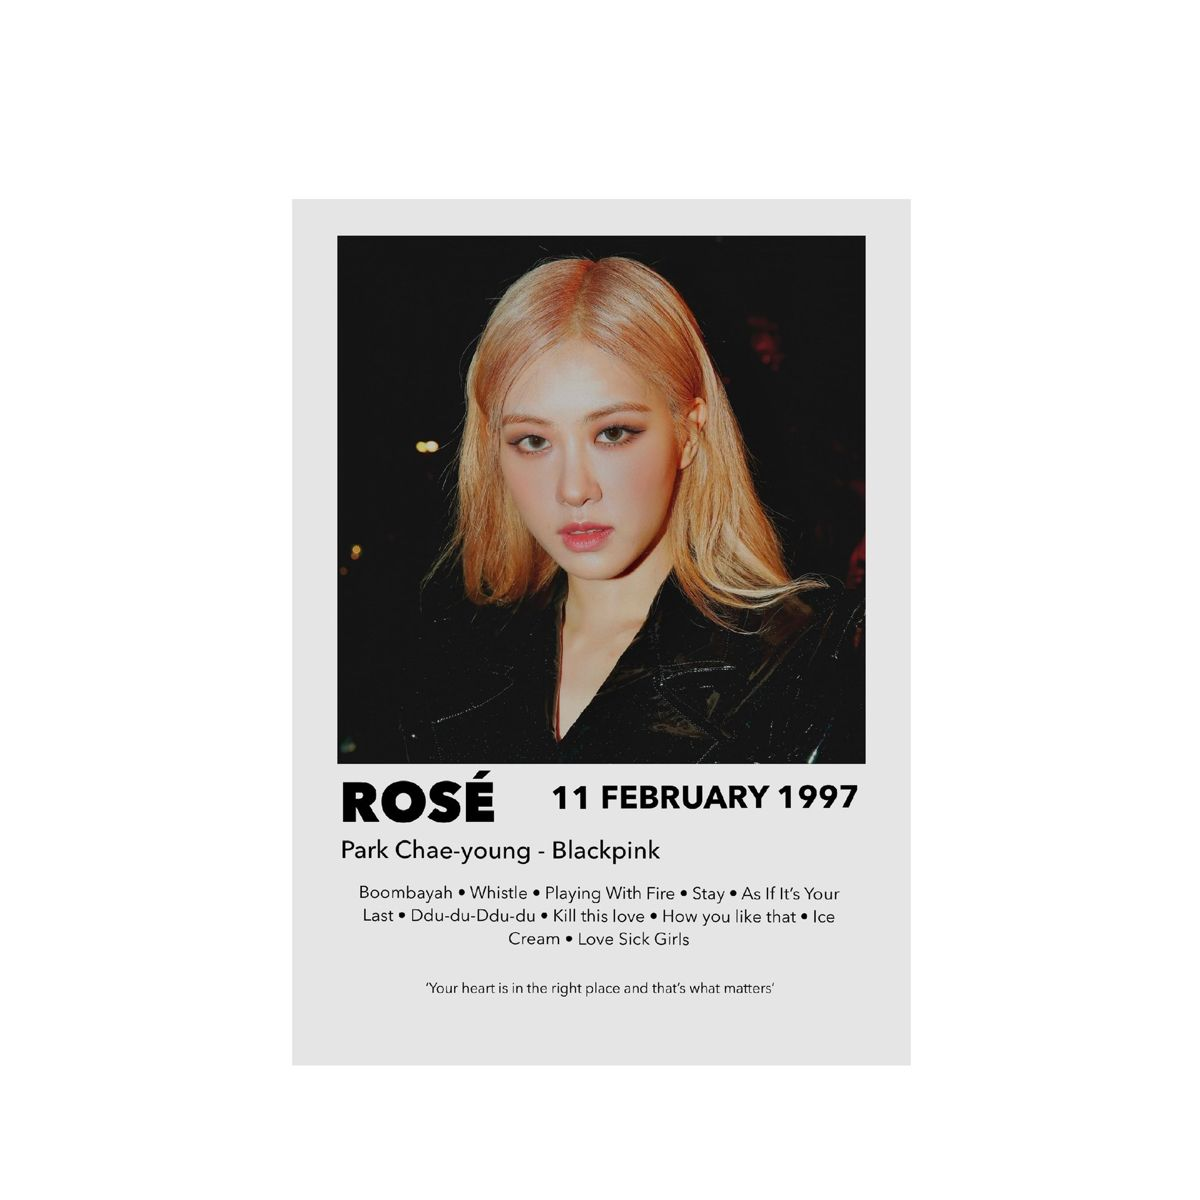 Rosé from BLACKPINK poster print photo